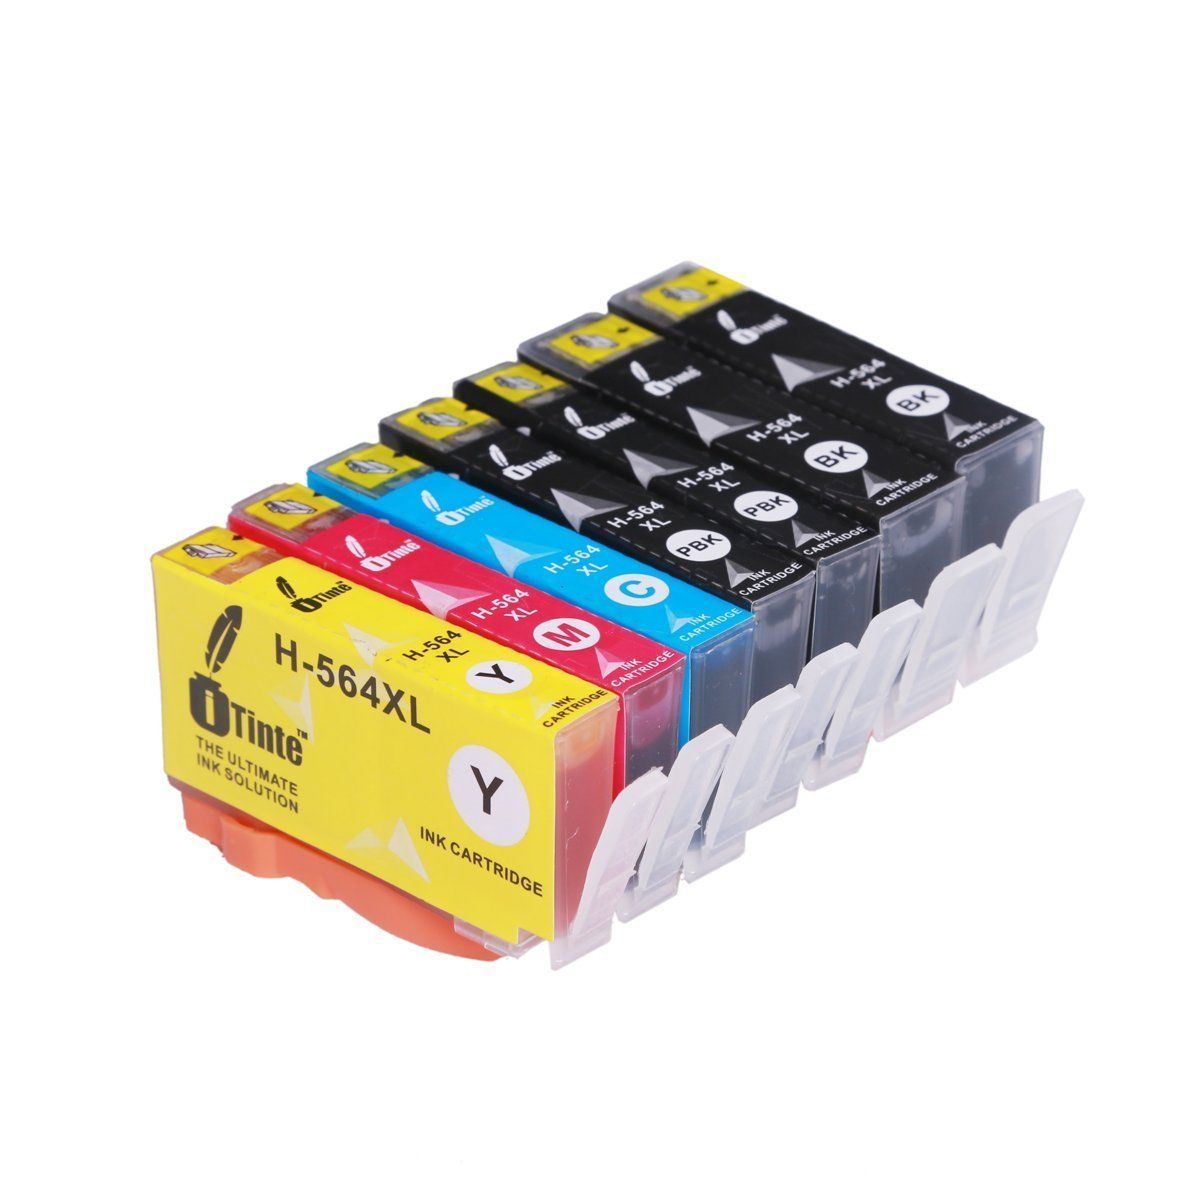 Itinte Compatible Hp 564xl Ink Cartridges 7 Pack Shoppers Smart Llc